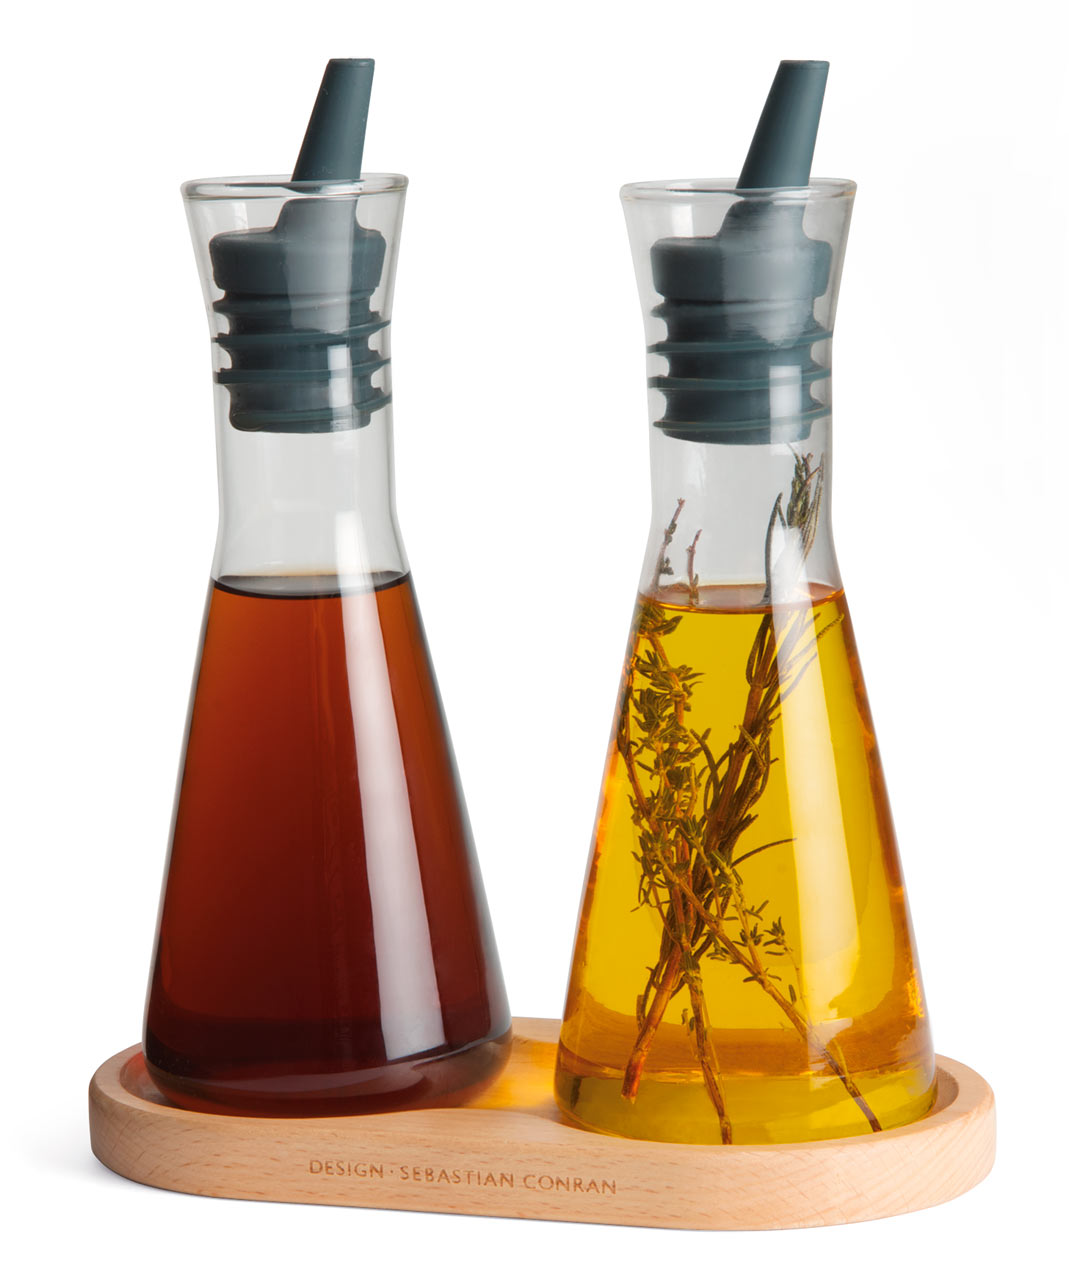 Beautility-Sebastian-Conran-Universal-Expert-11-5016Oil_and_vinegar_set